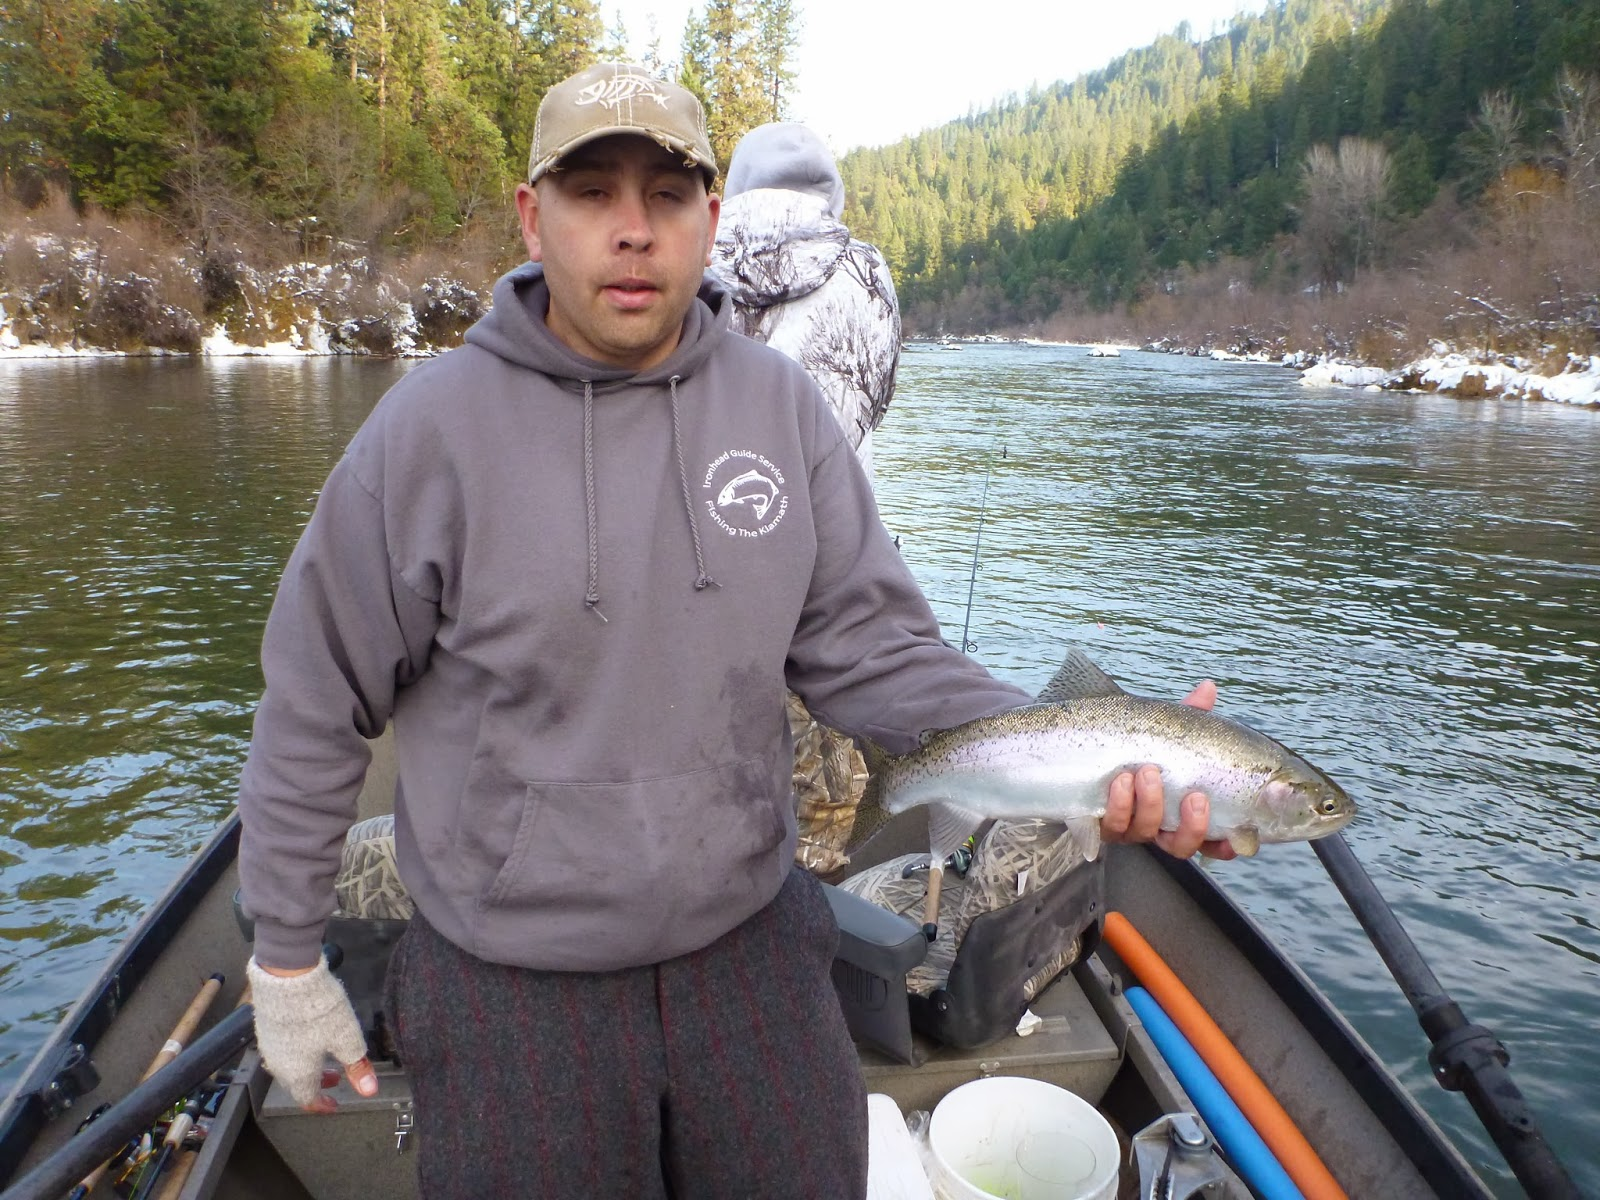 Steelhead fishing on the Klamath River with Ironhead Guide Service